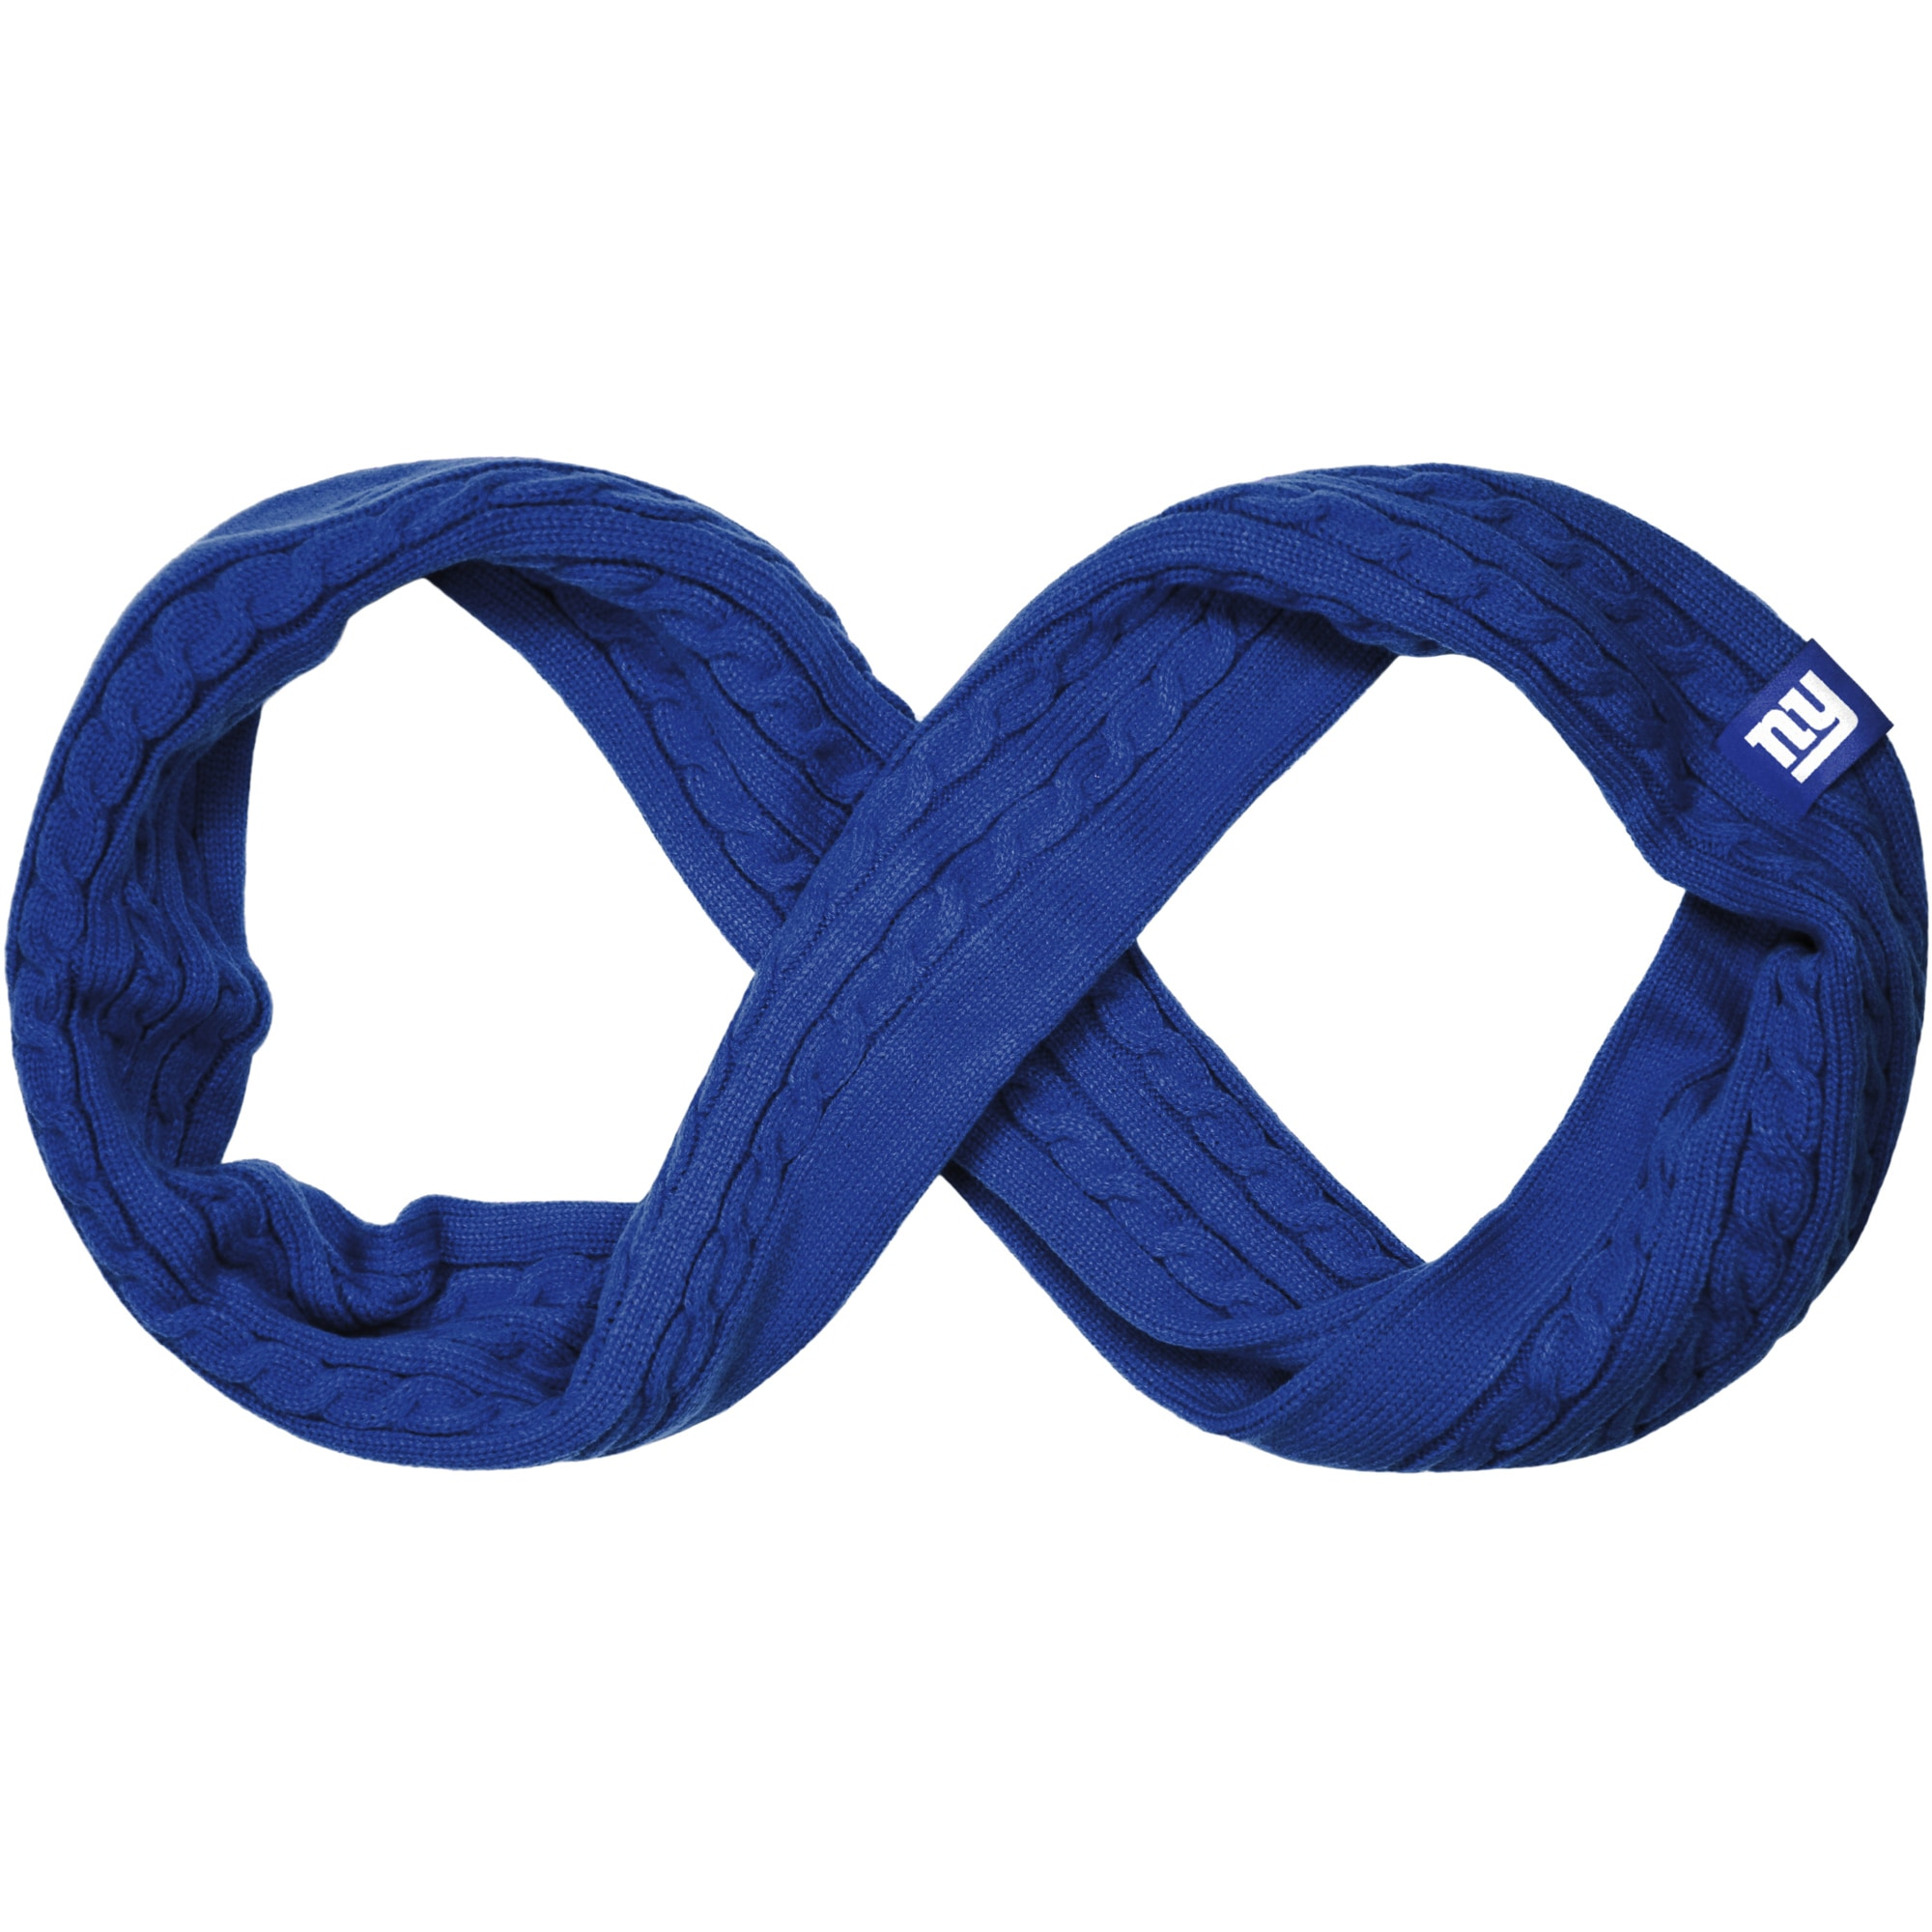 New York Giants Women's Cable Knit Infinity Scarf - Royal